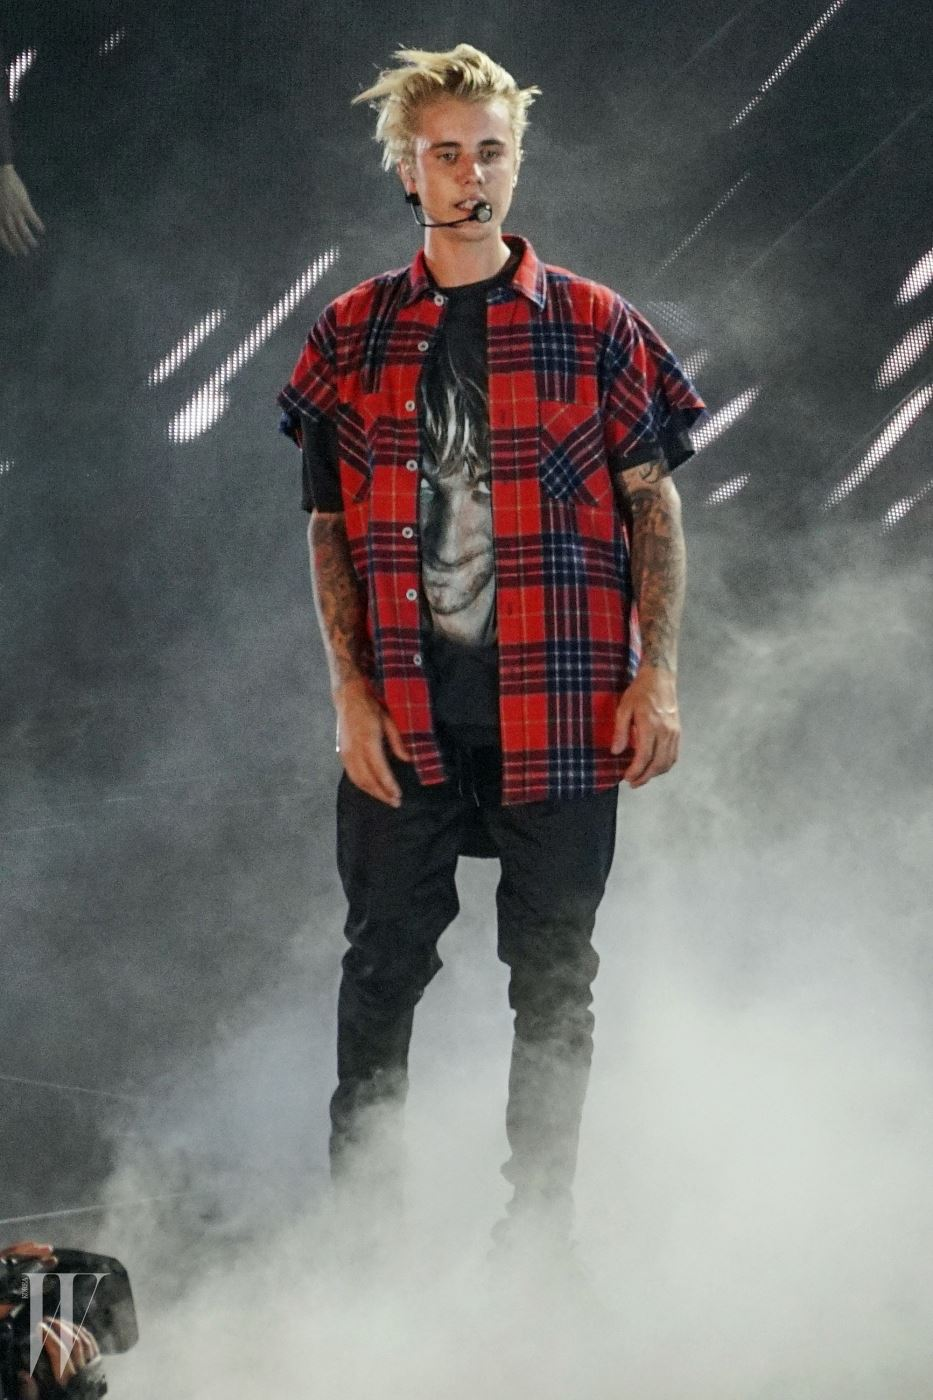 WOW! Justin Bieber hits all the high notes at 'Purpose World Tour' Debut Show!